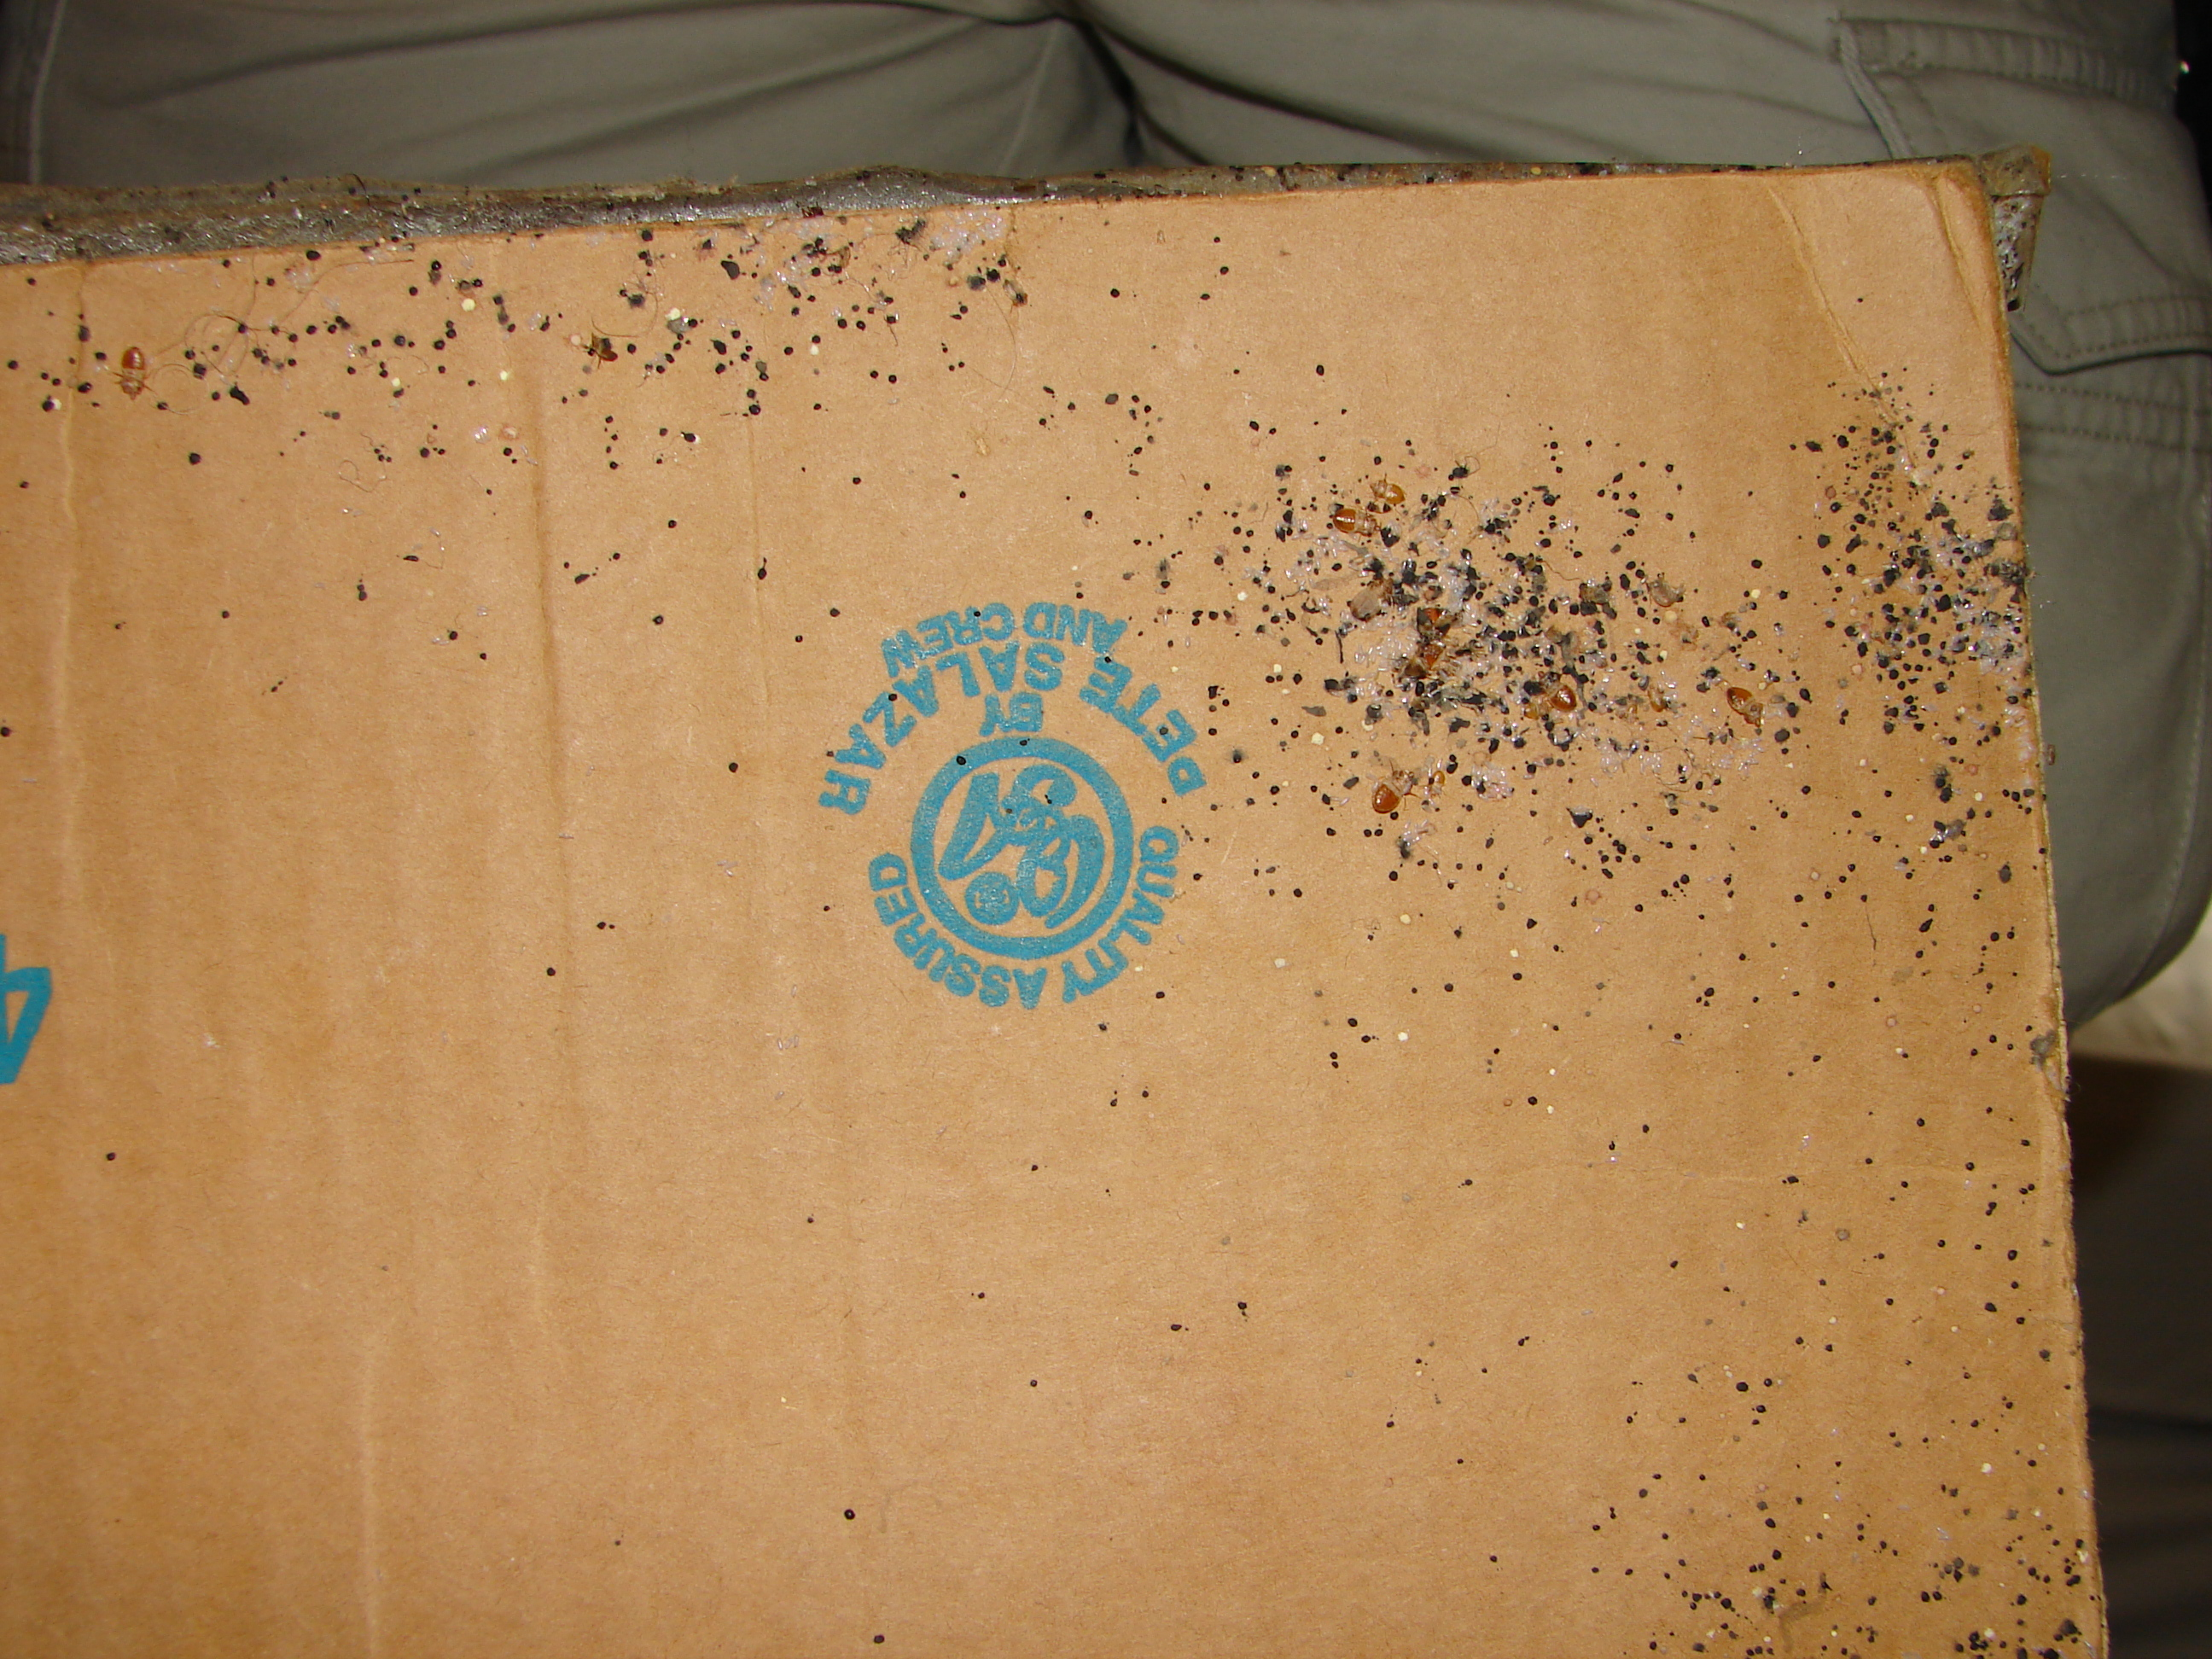 Bed Bugs Eggs And Feces On Cardboard Box Bed Bugs